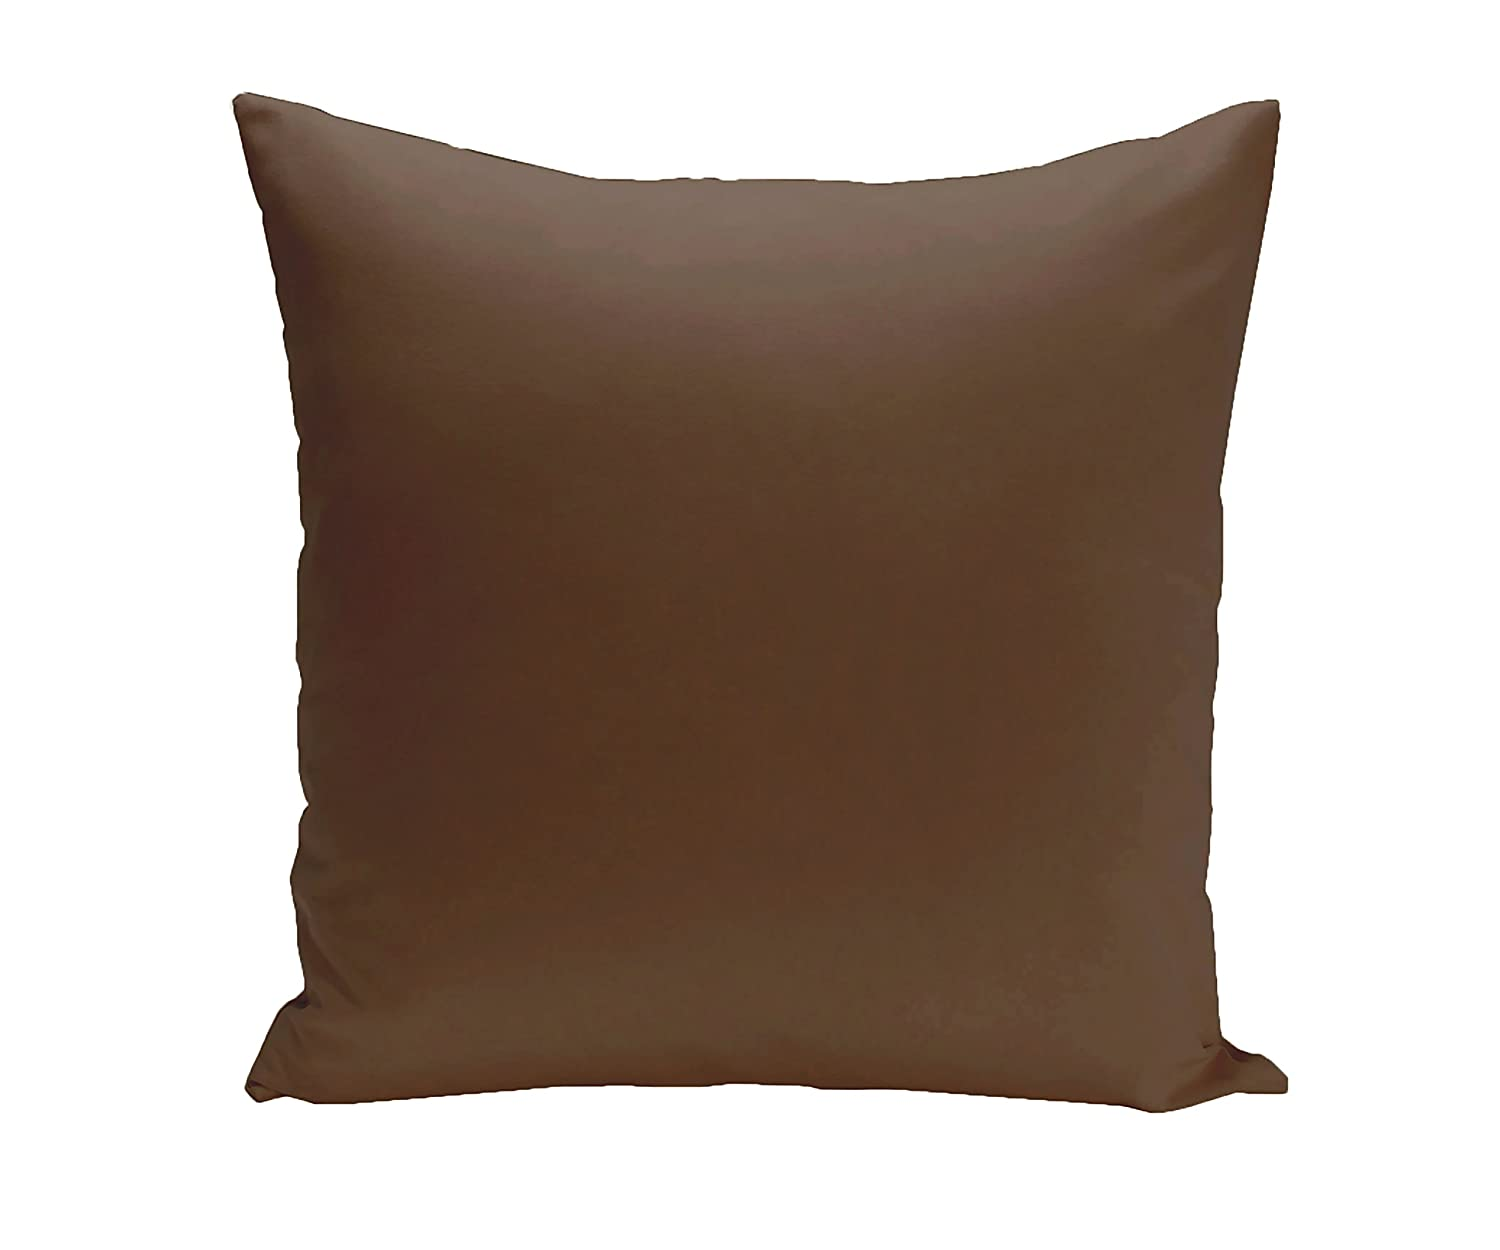 Oxen Ebydesign Asian Collection Solid Decorative Pillow